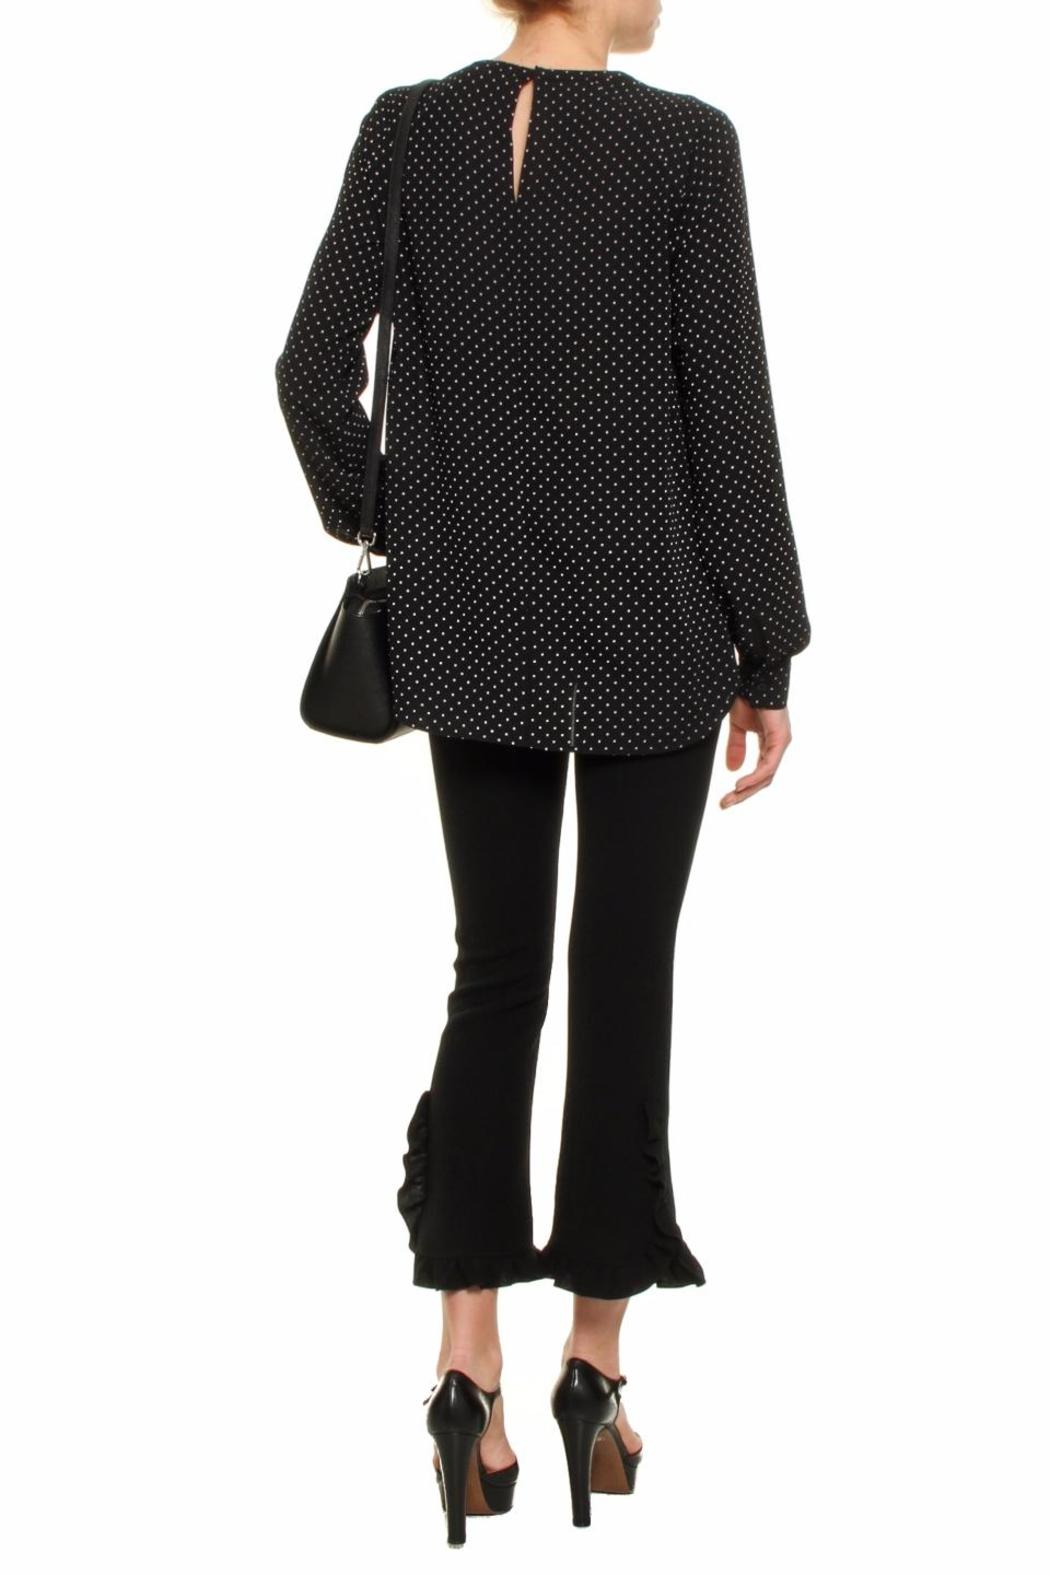 Michael by Michael Kors Polka Dot Blouse - Front Full Image